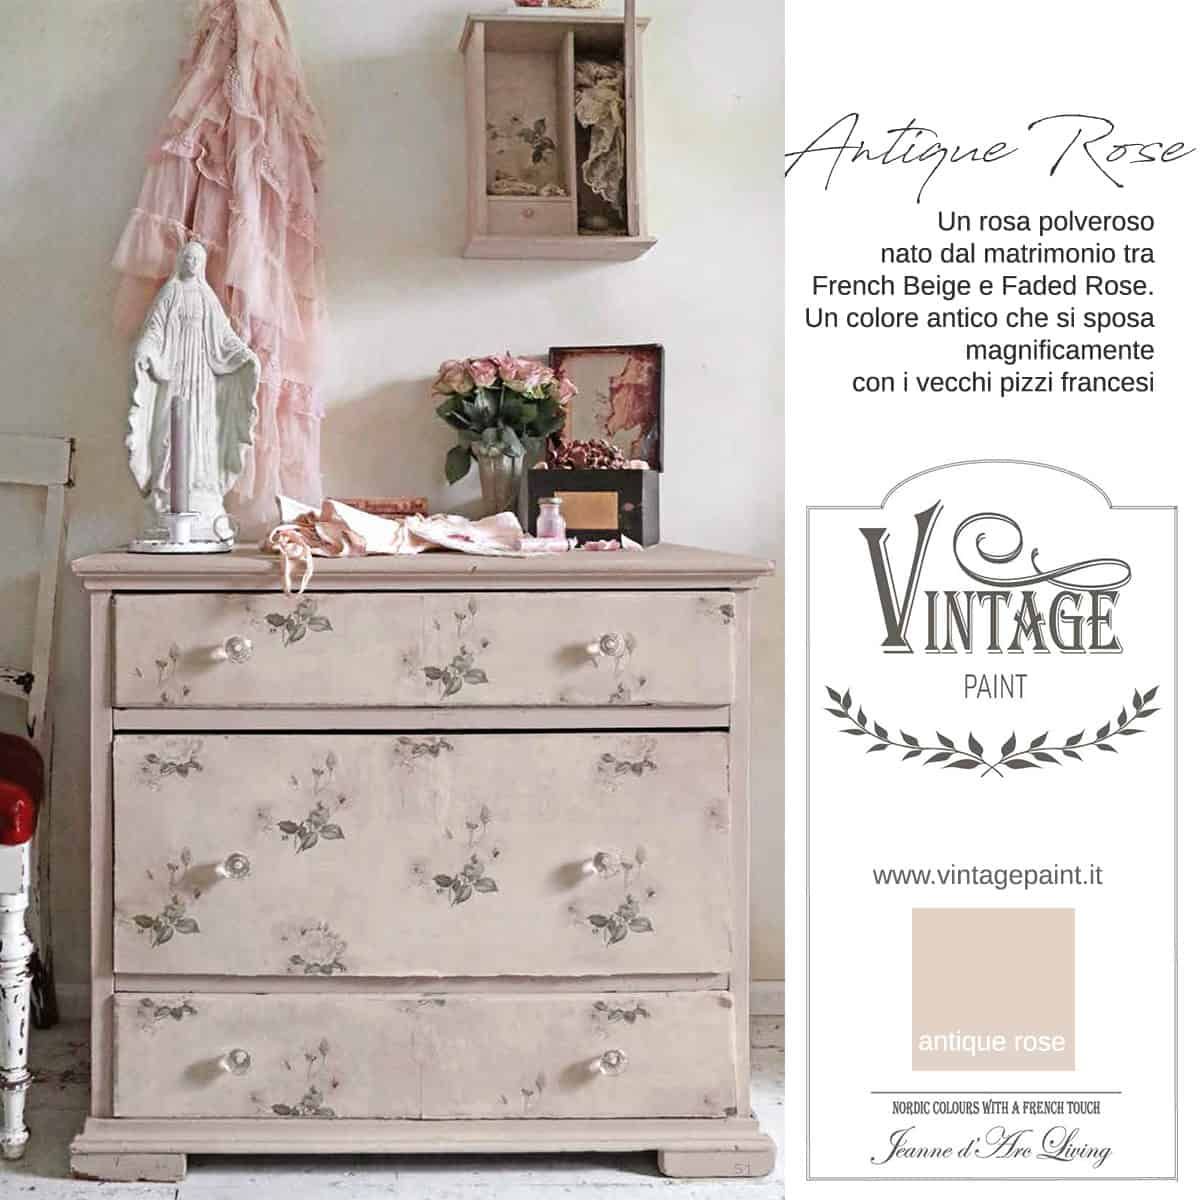 Antique Rose Vernice Vintage Chalk Paint Vintagepaint